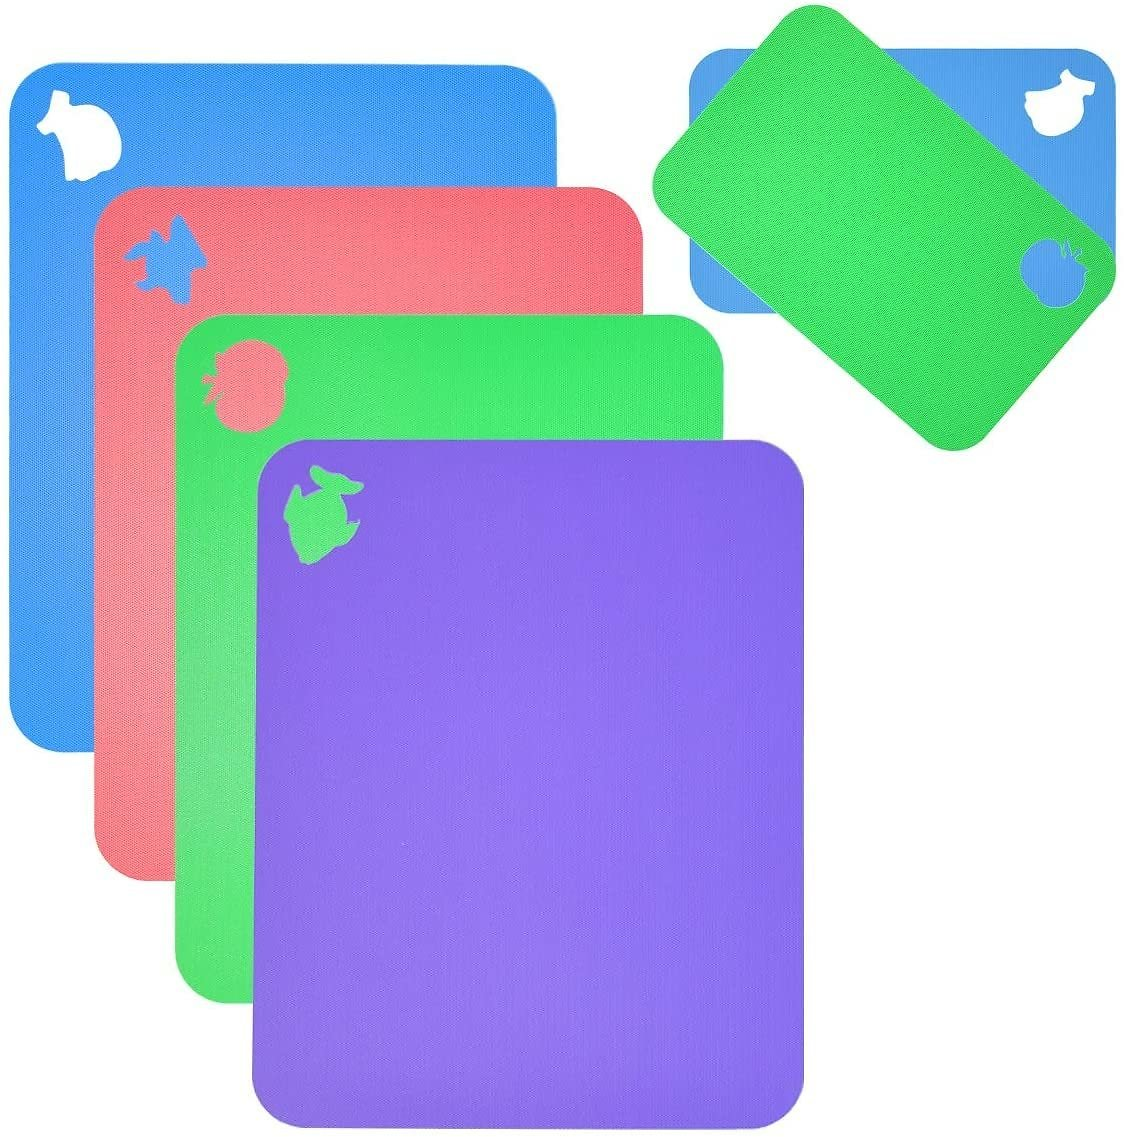 Flexible Cutting Board for Kitchen 14.5X11 Thick 0.7mm Set of 6 Flexible Cutting Board Mats With Food Icons Assorted Colors Plas